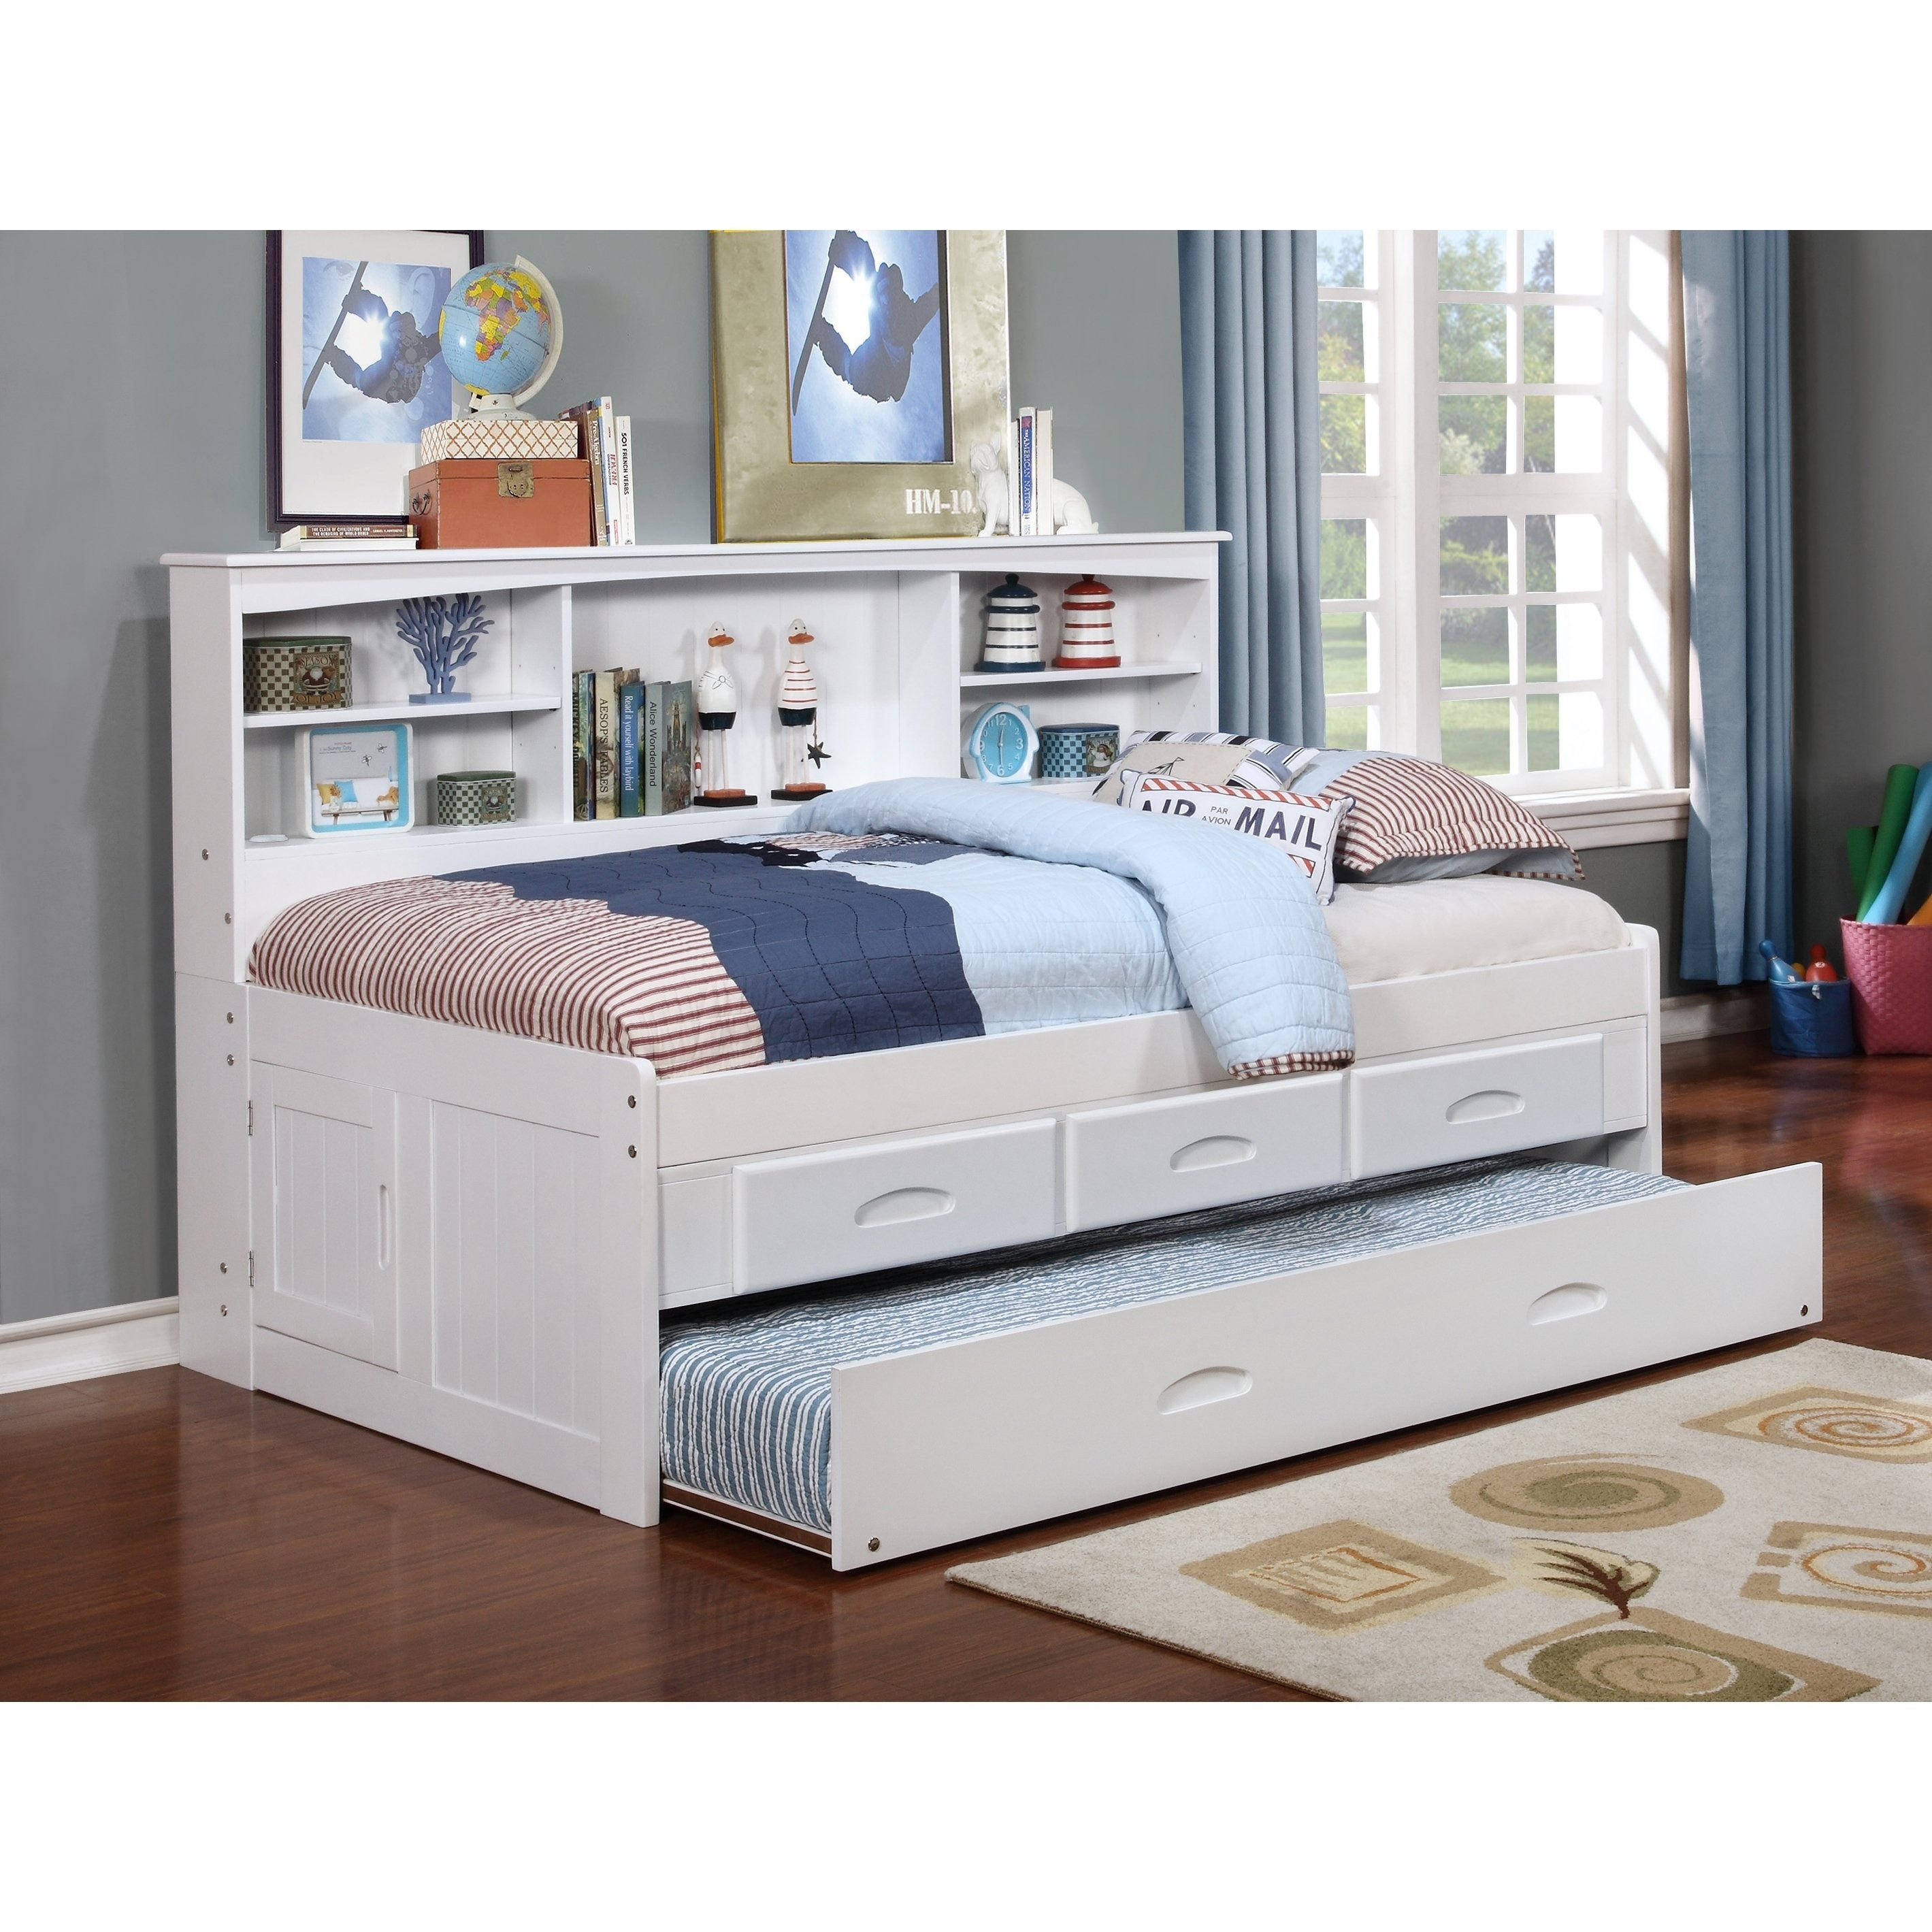 American Furniture Classics White Solid Pine Twin 3 Drawer Daybed